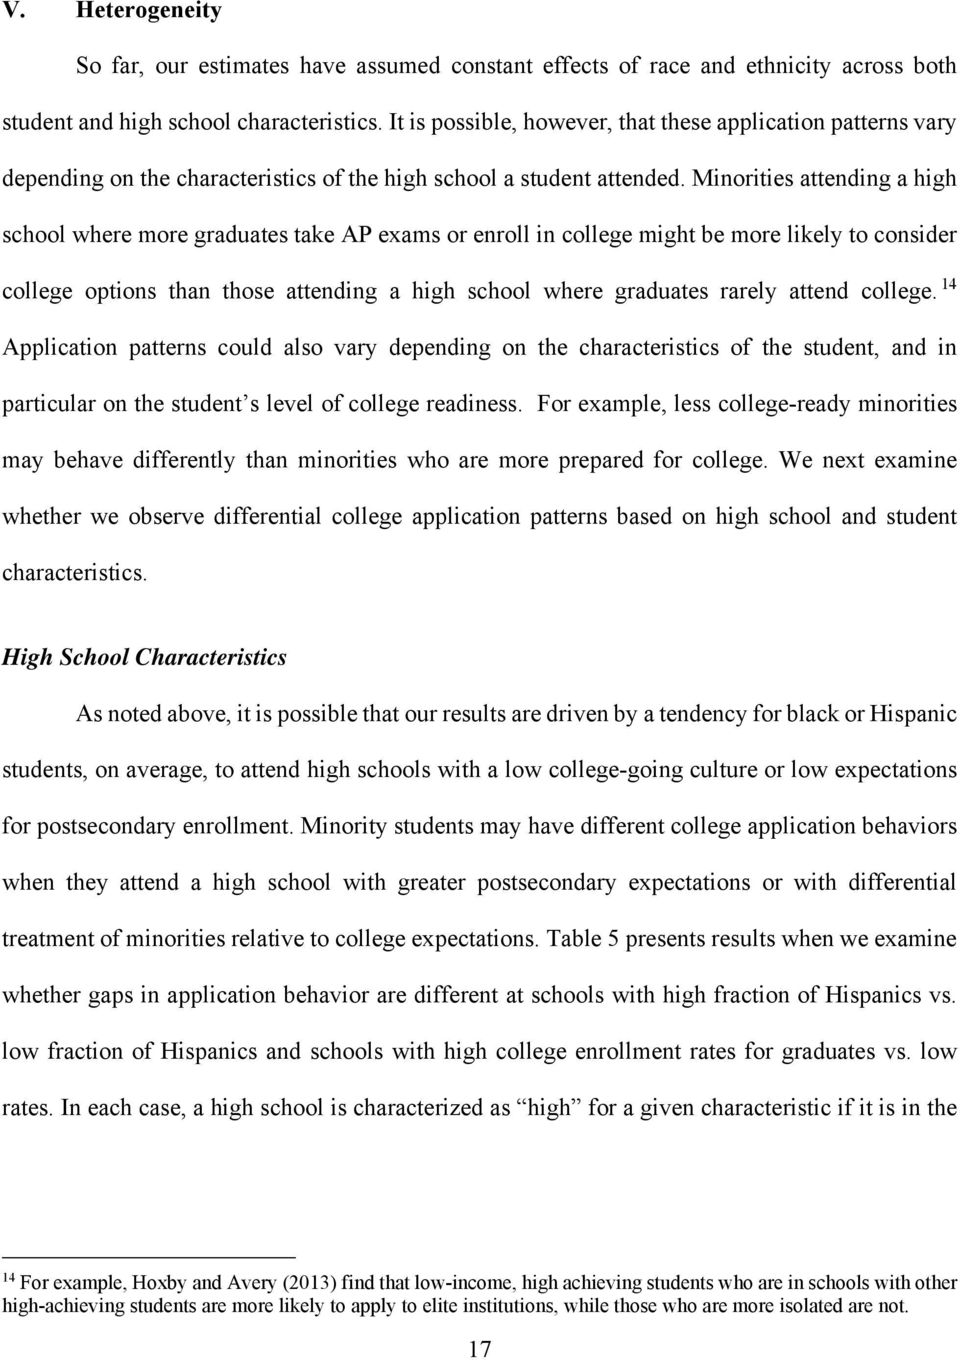 Minorities attending a high school where more graduates take AP exams or enroll in college might be more likely to consider college options than those attending a high school where graduates rarely